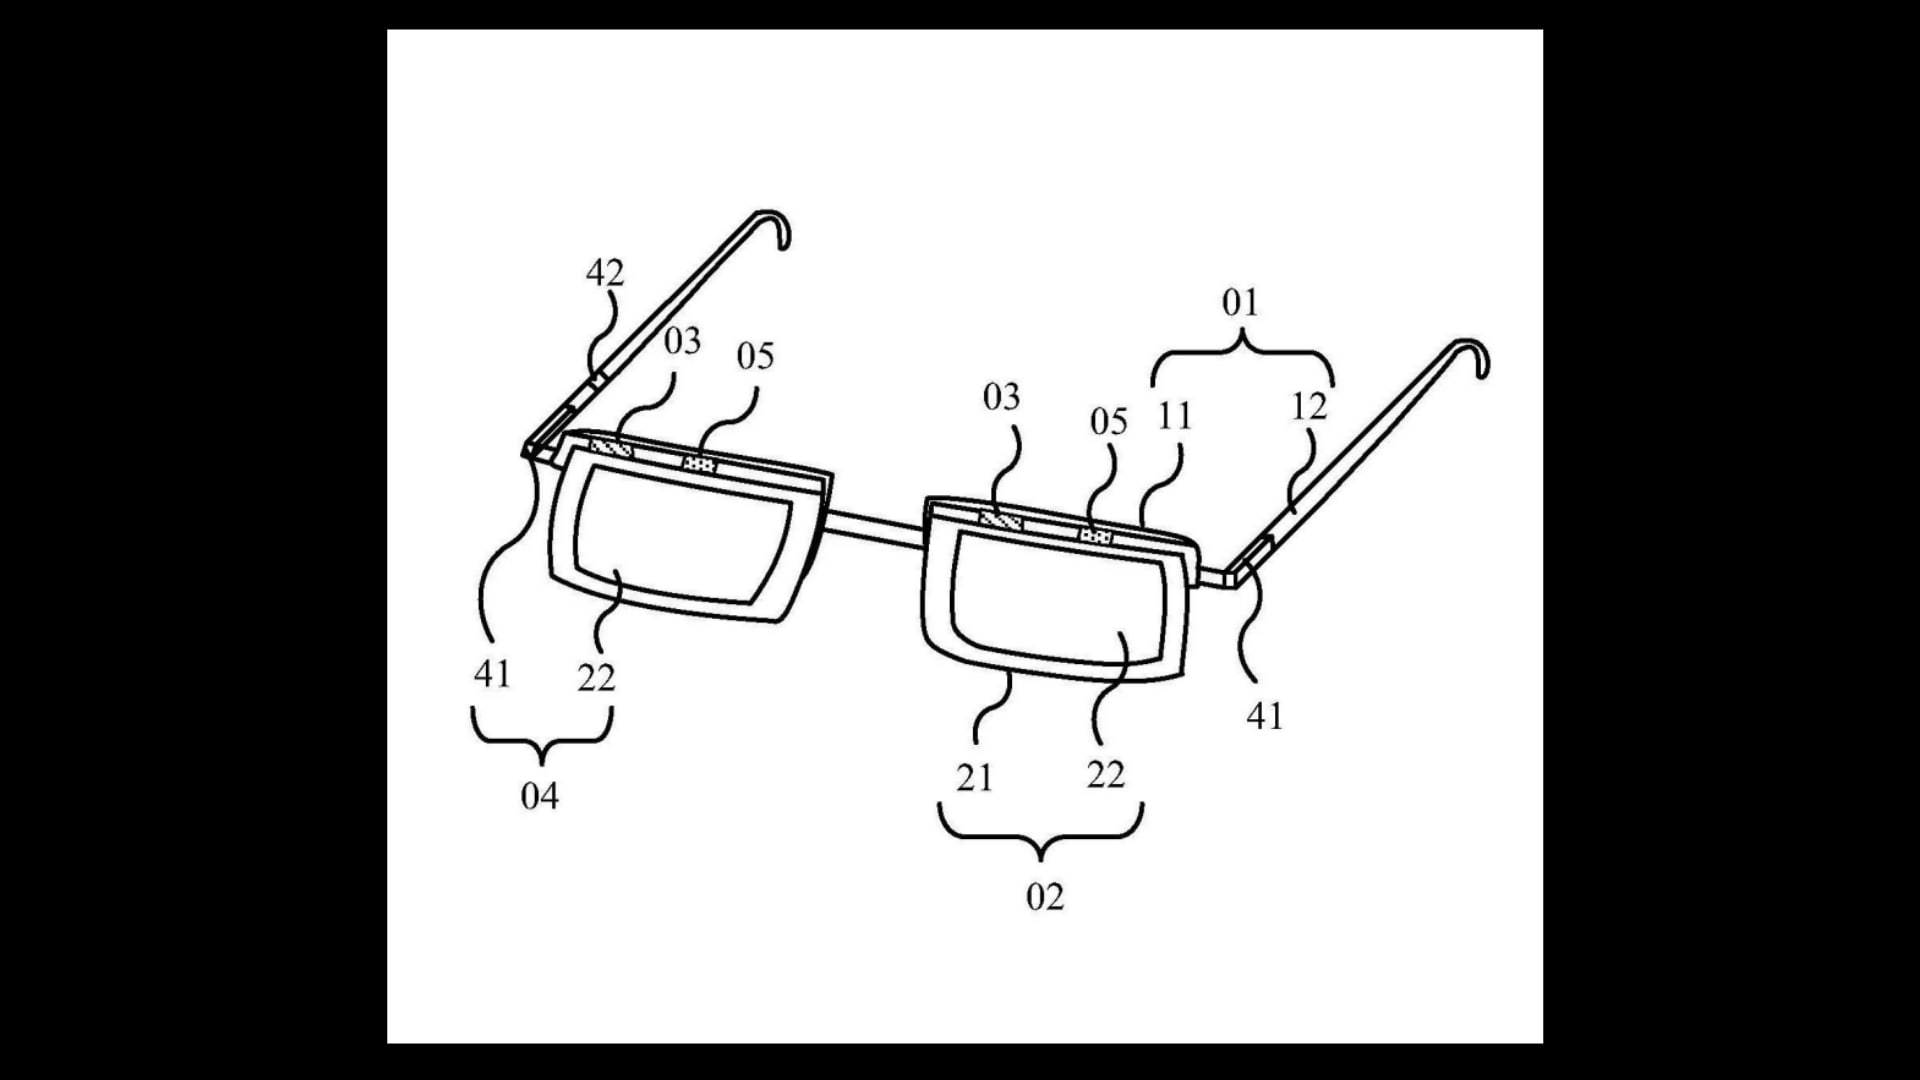 The smart glasses as illustrated on the patent filed by BOE.